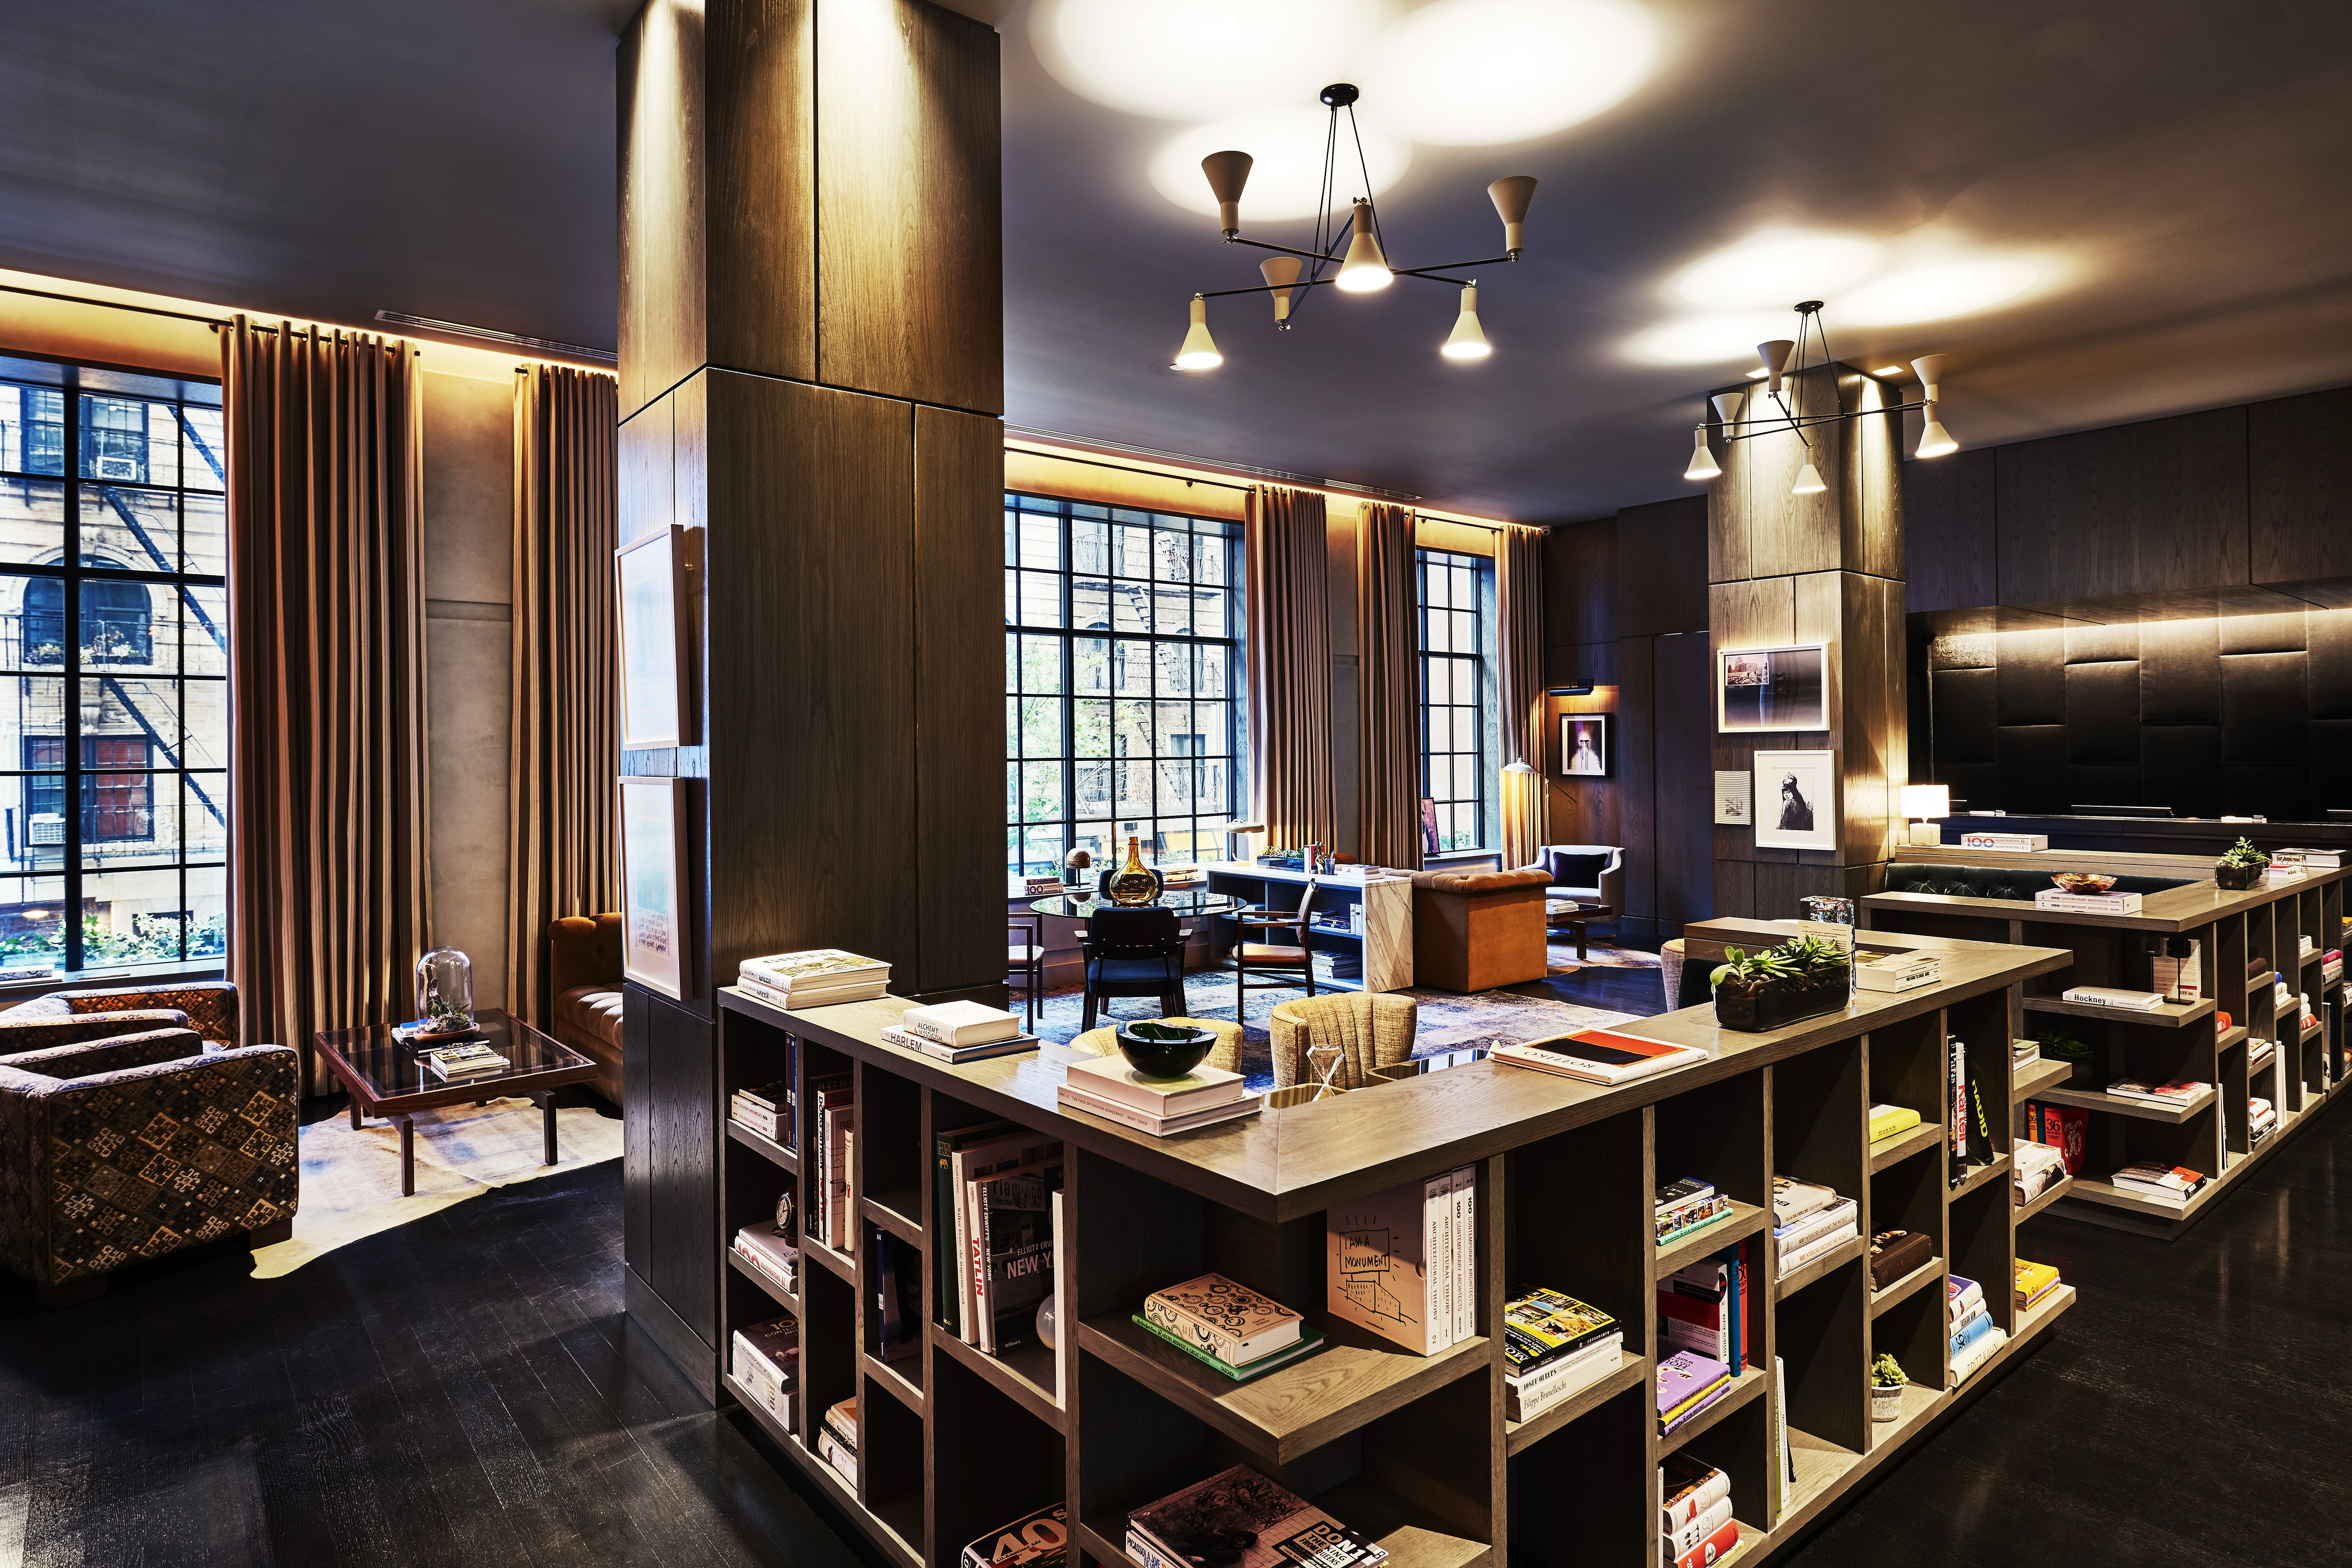 Designs Featured On Www Martynwhitedesigns Images Courtesy Of Sixty Hotels Lobby And The Gordon Bar At Soho Hotel New York